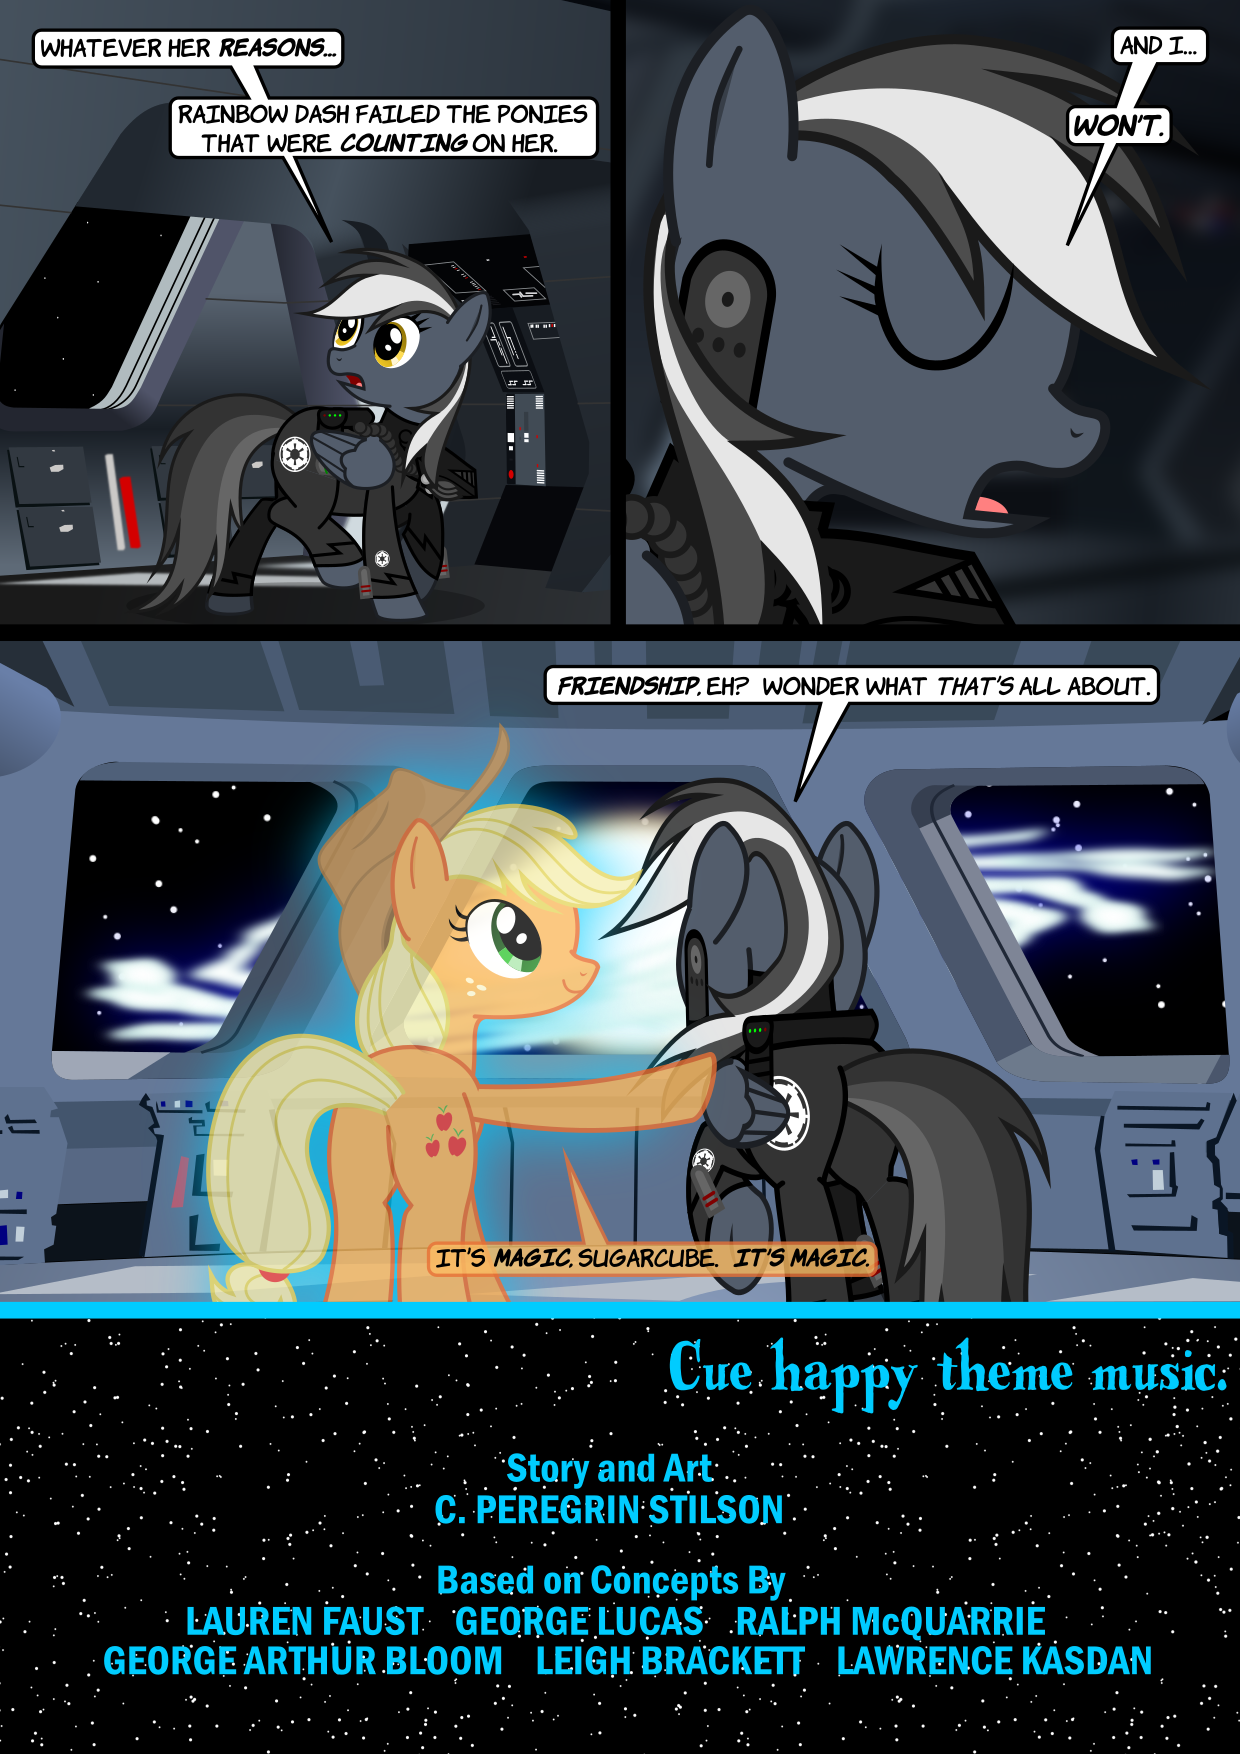 Star Mares 2.4.26: What Friendship Could Be